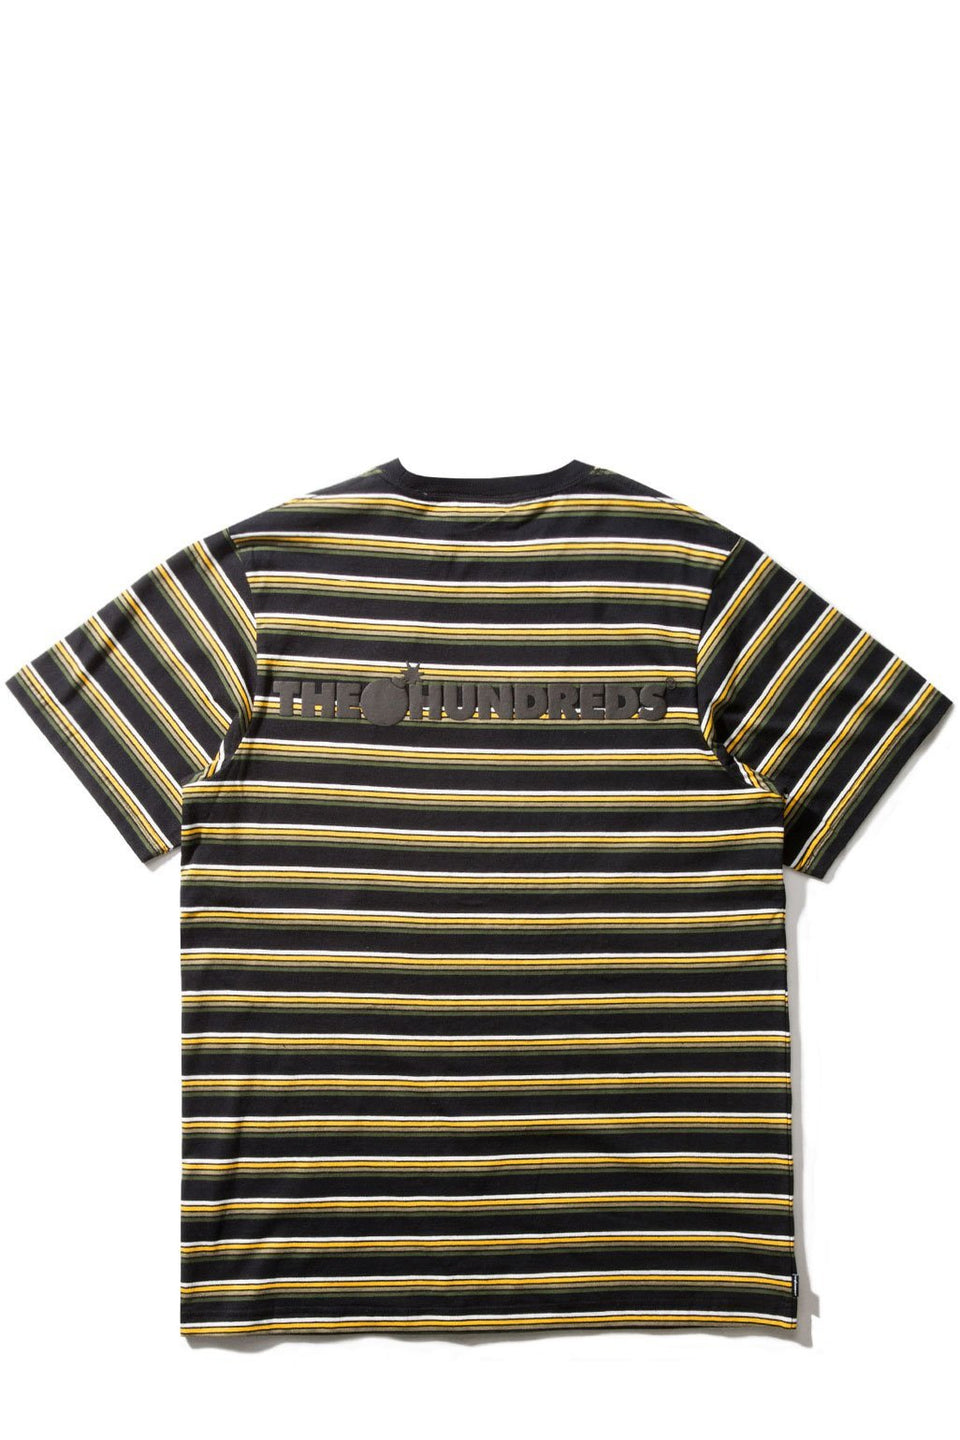 Vince T-Shirt-TOPS-The Hundreds UK